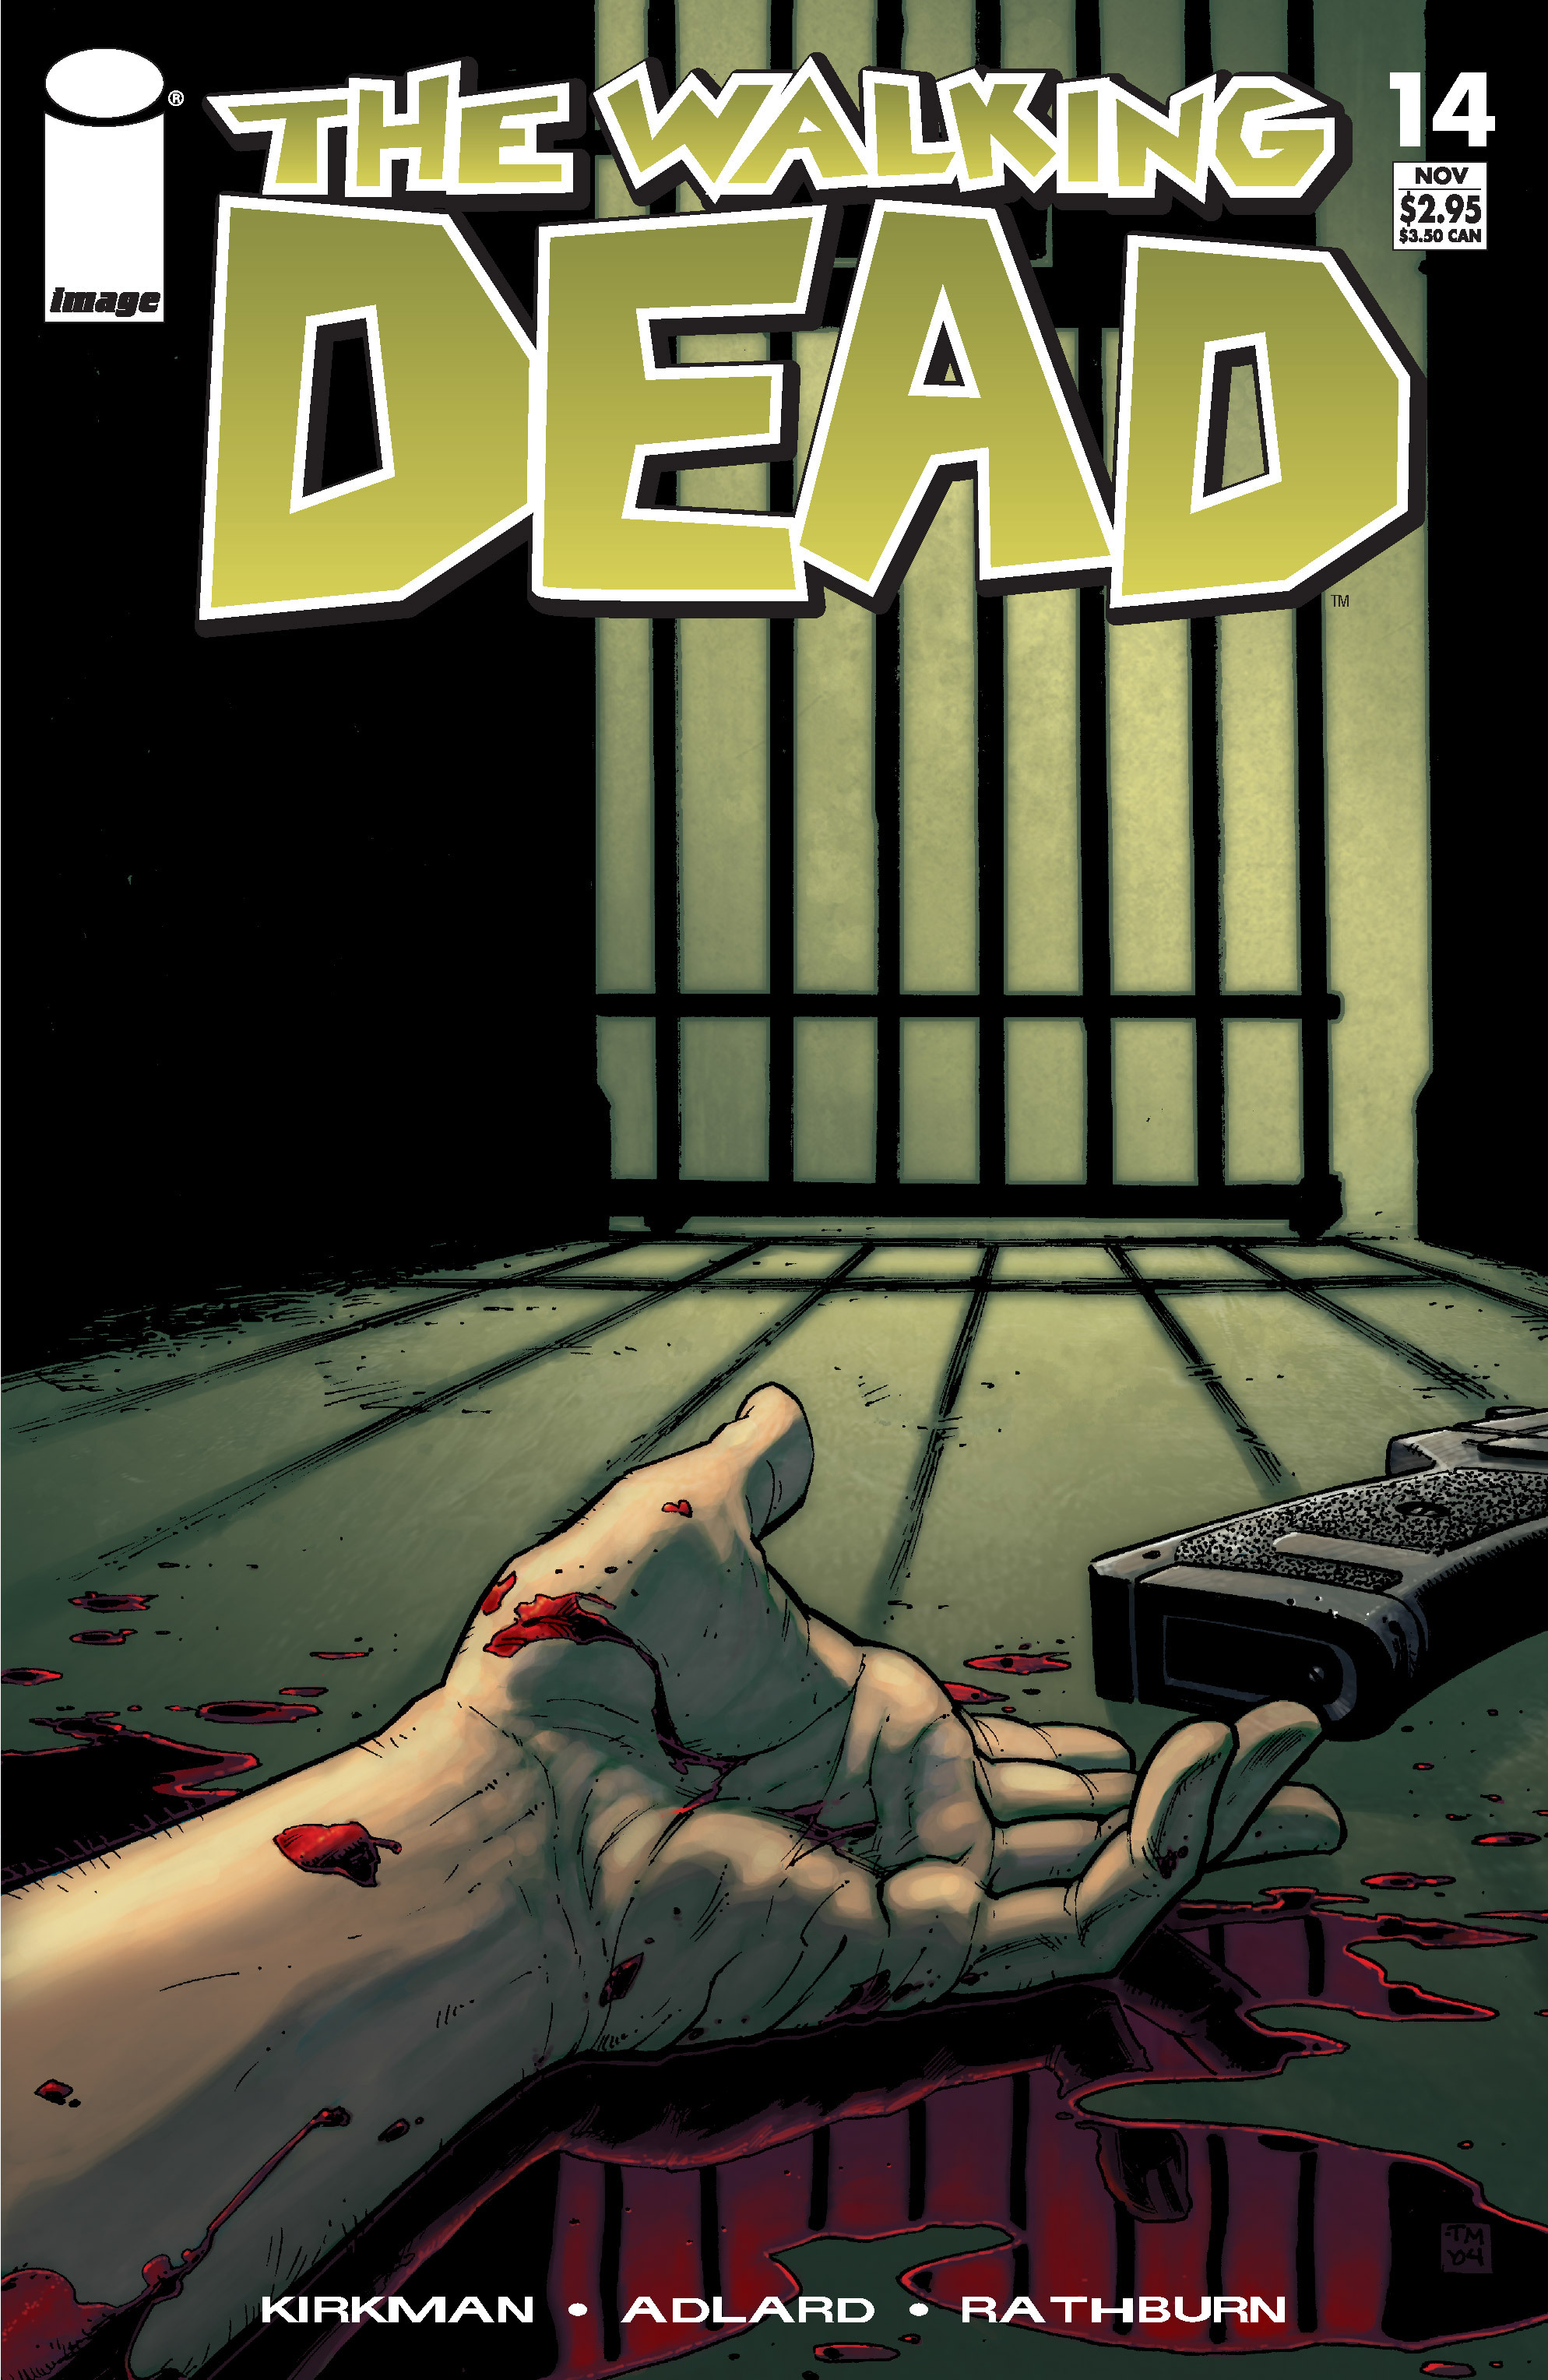 The Walking Dead 14 Page 1